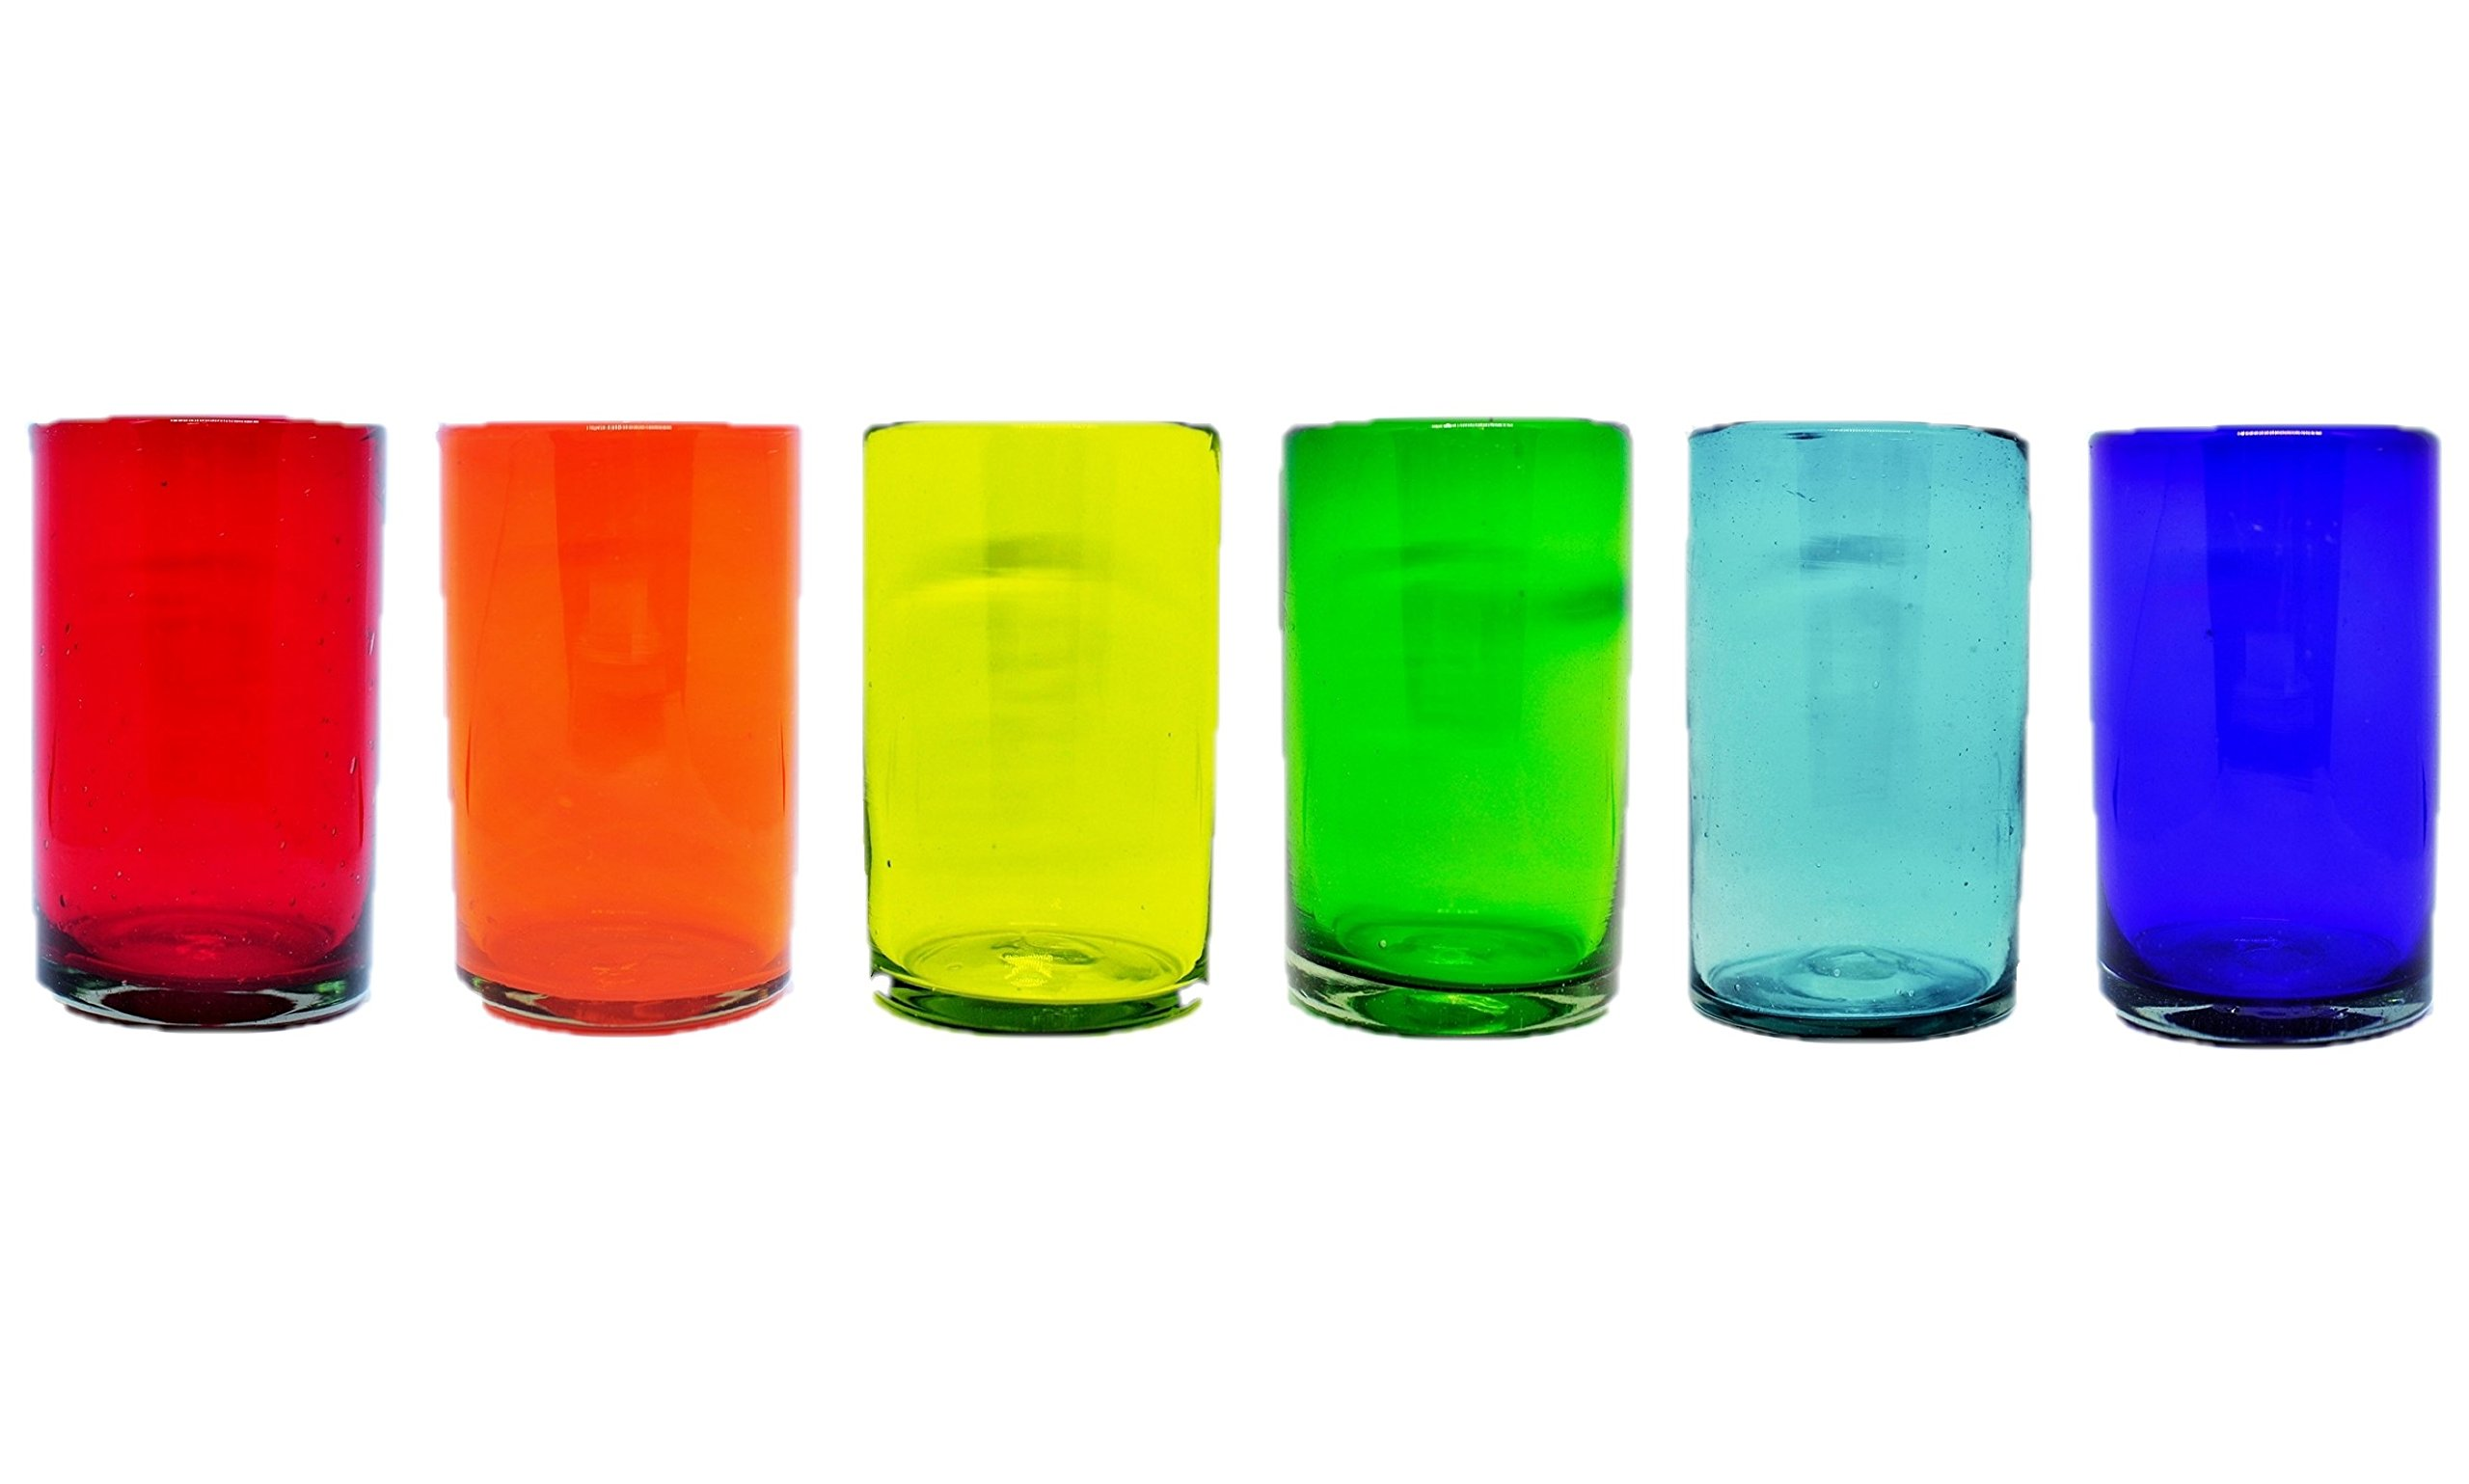 Mexican Blown Glass Drinking Glasses 'Rainbow' (Set of 6)